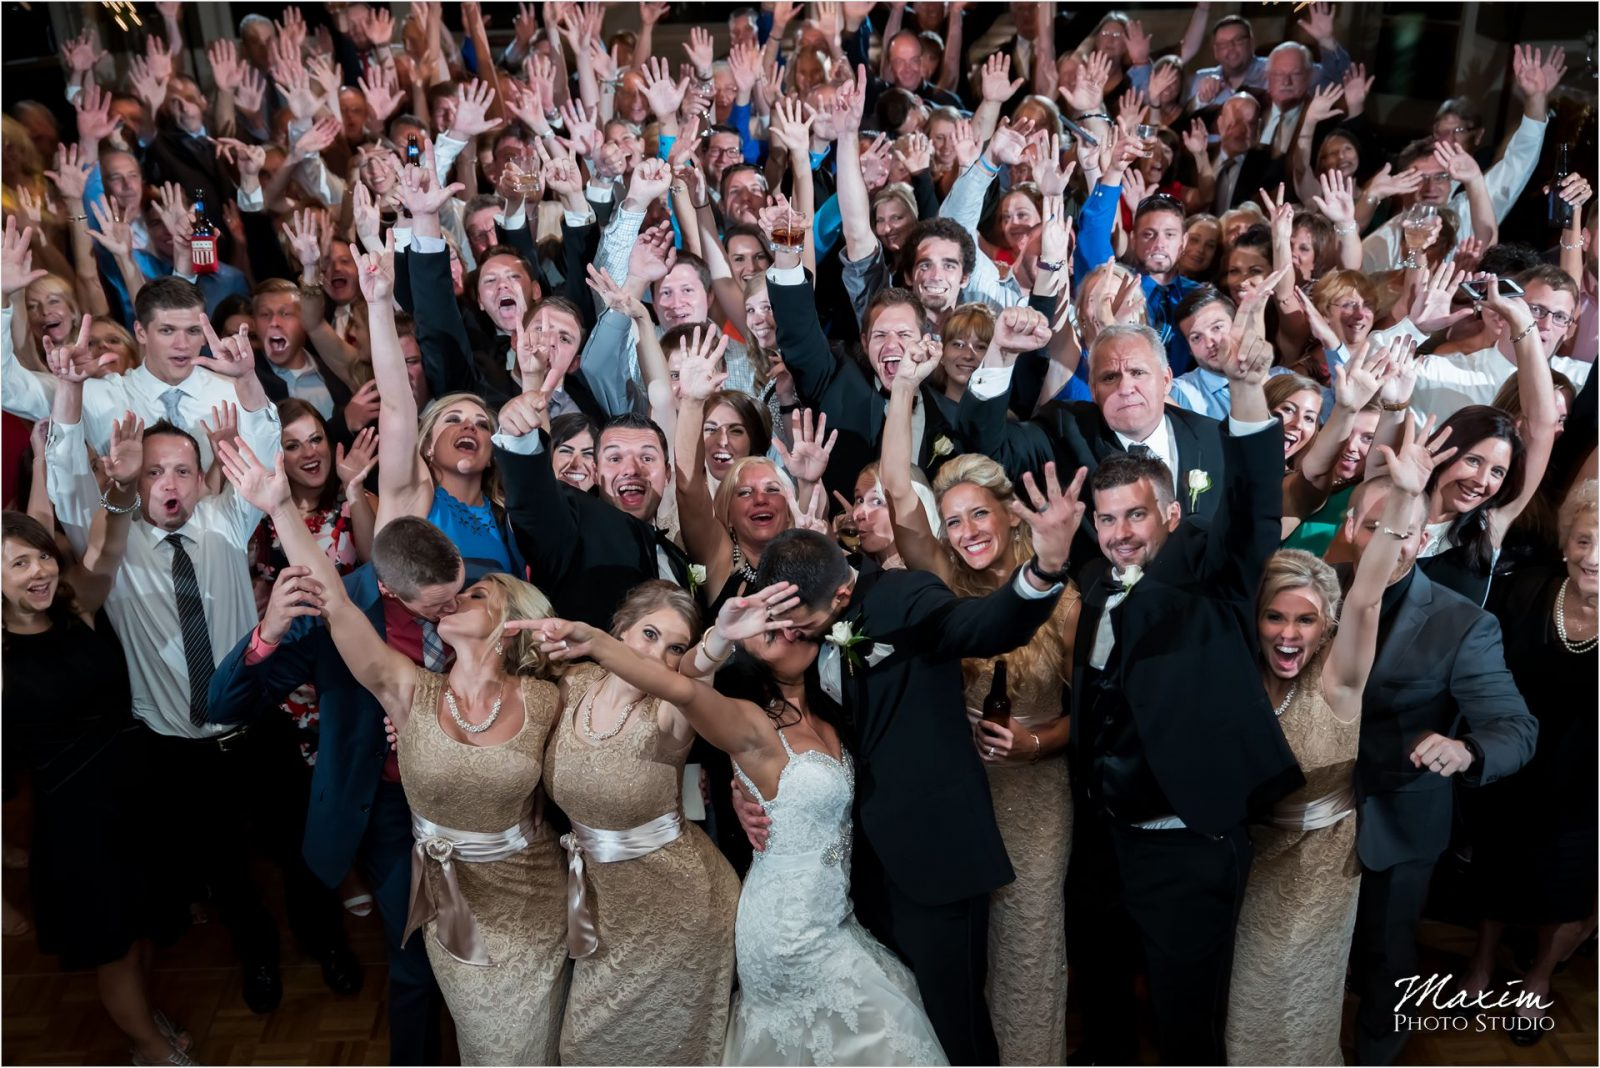 Drees Pavilion Covington Kentucky Wedding Reception Group Photo